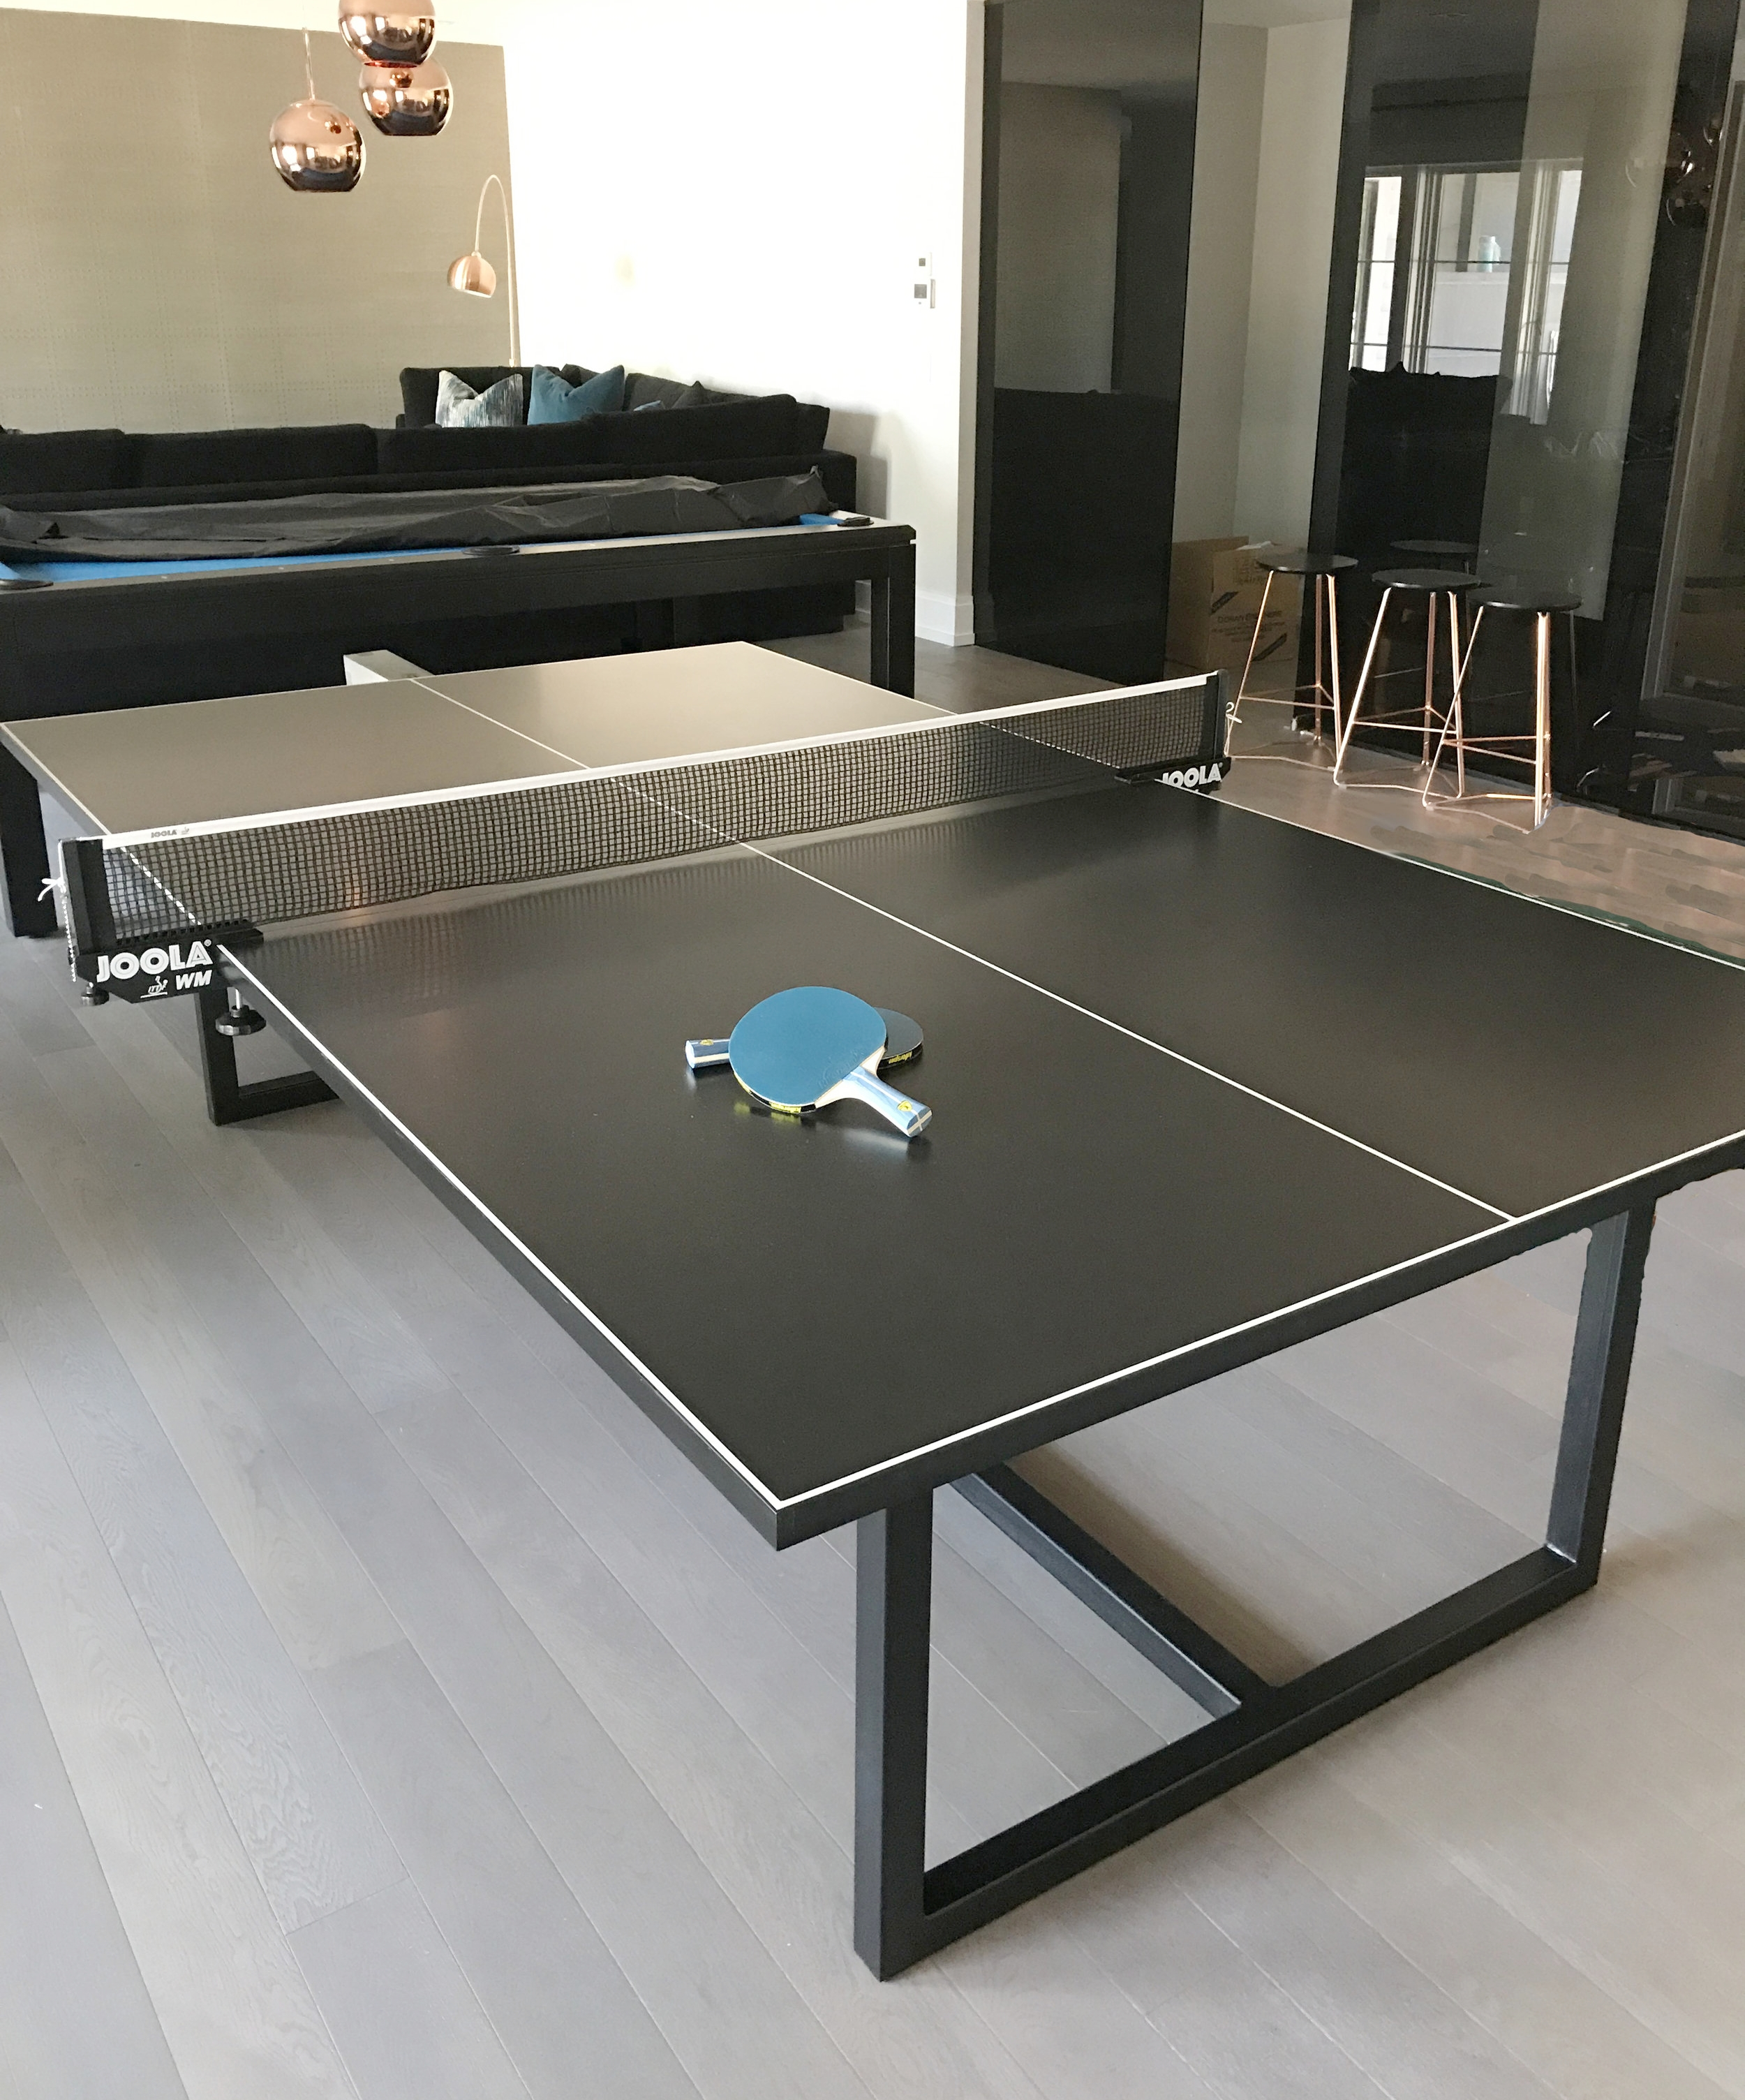 2nd view of charcoal ping pong table